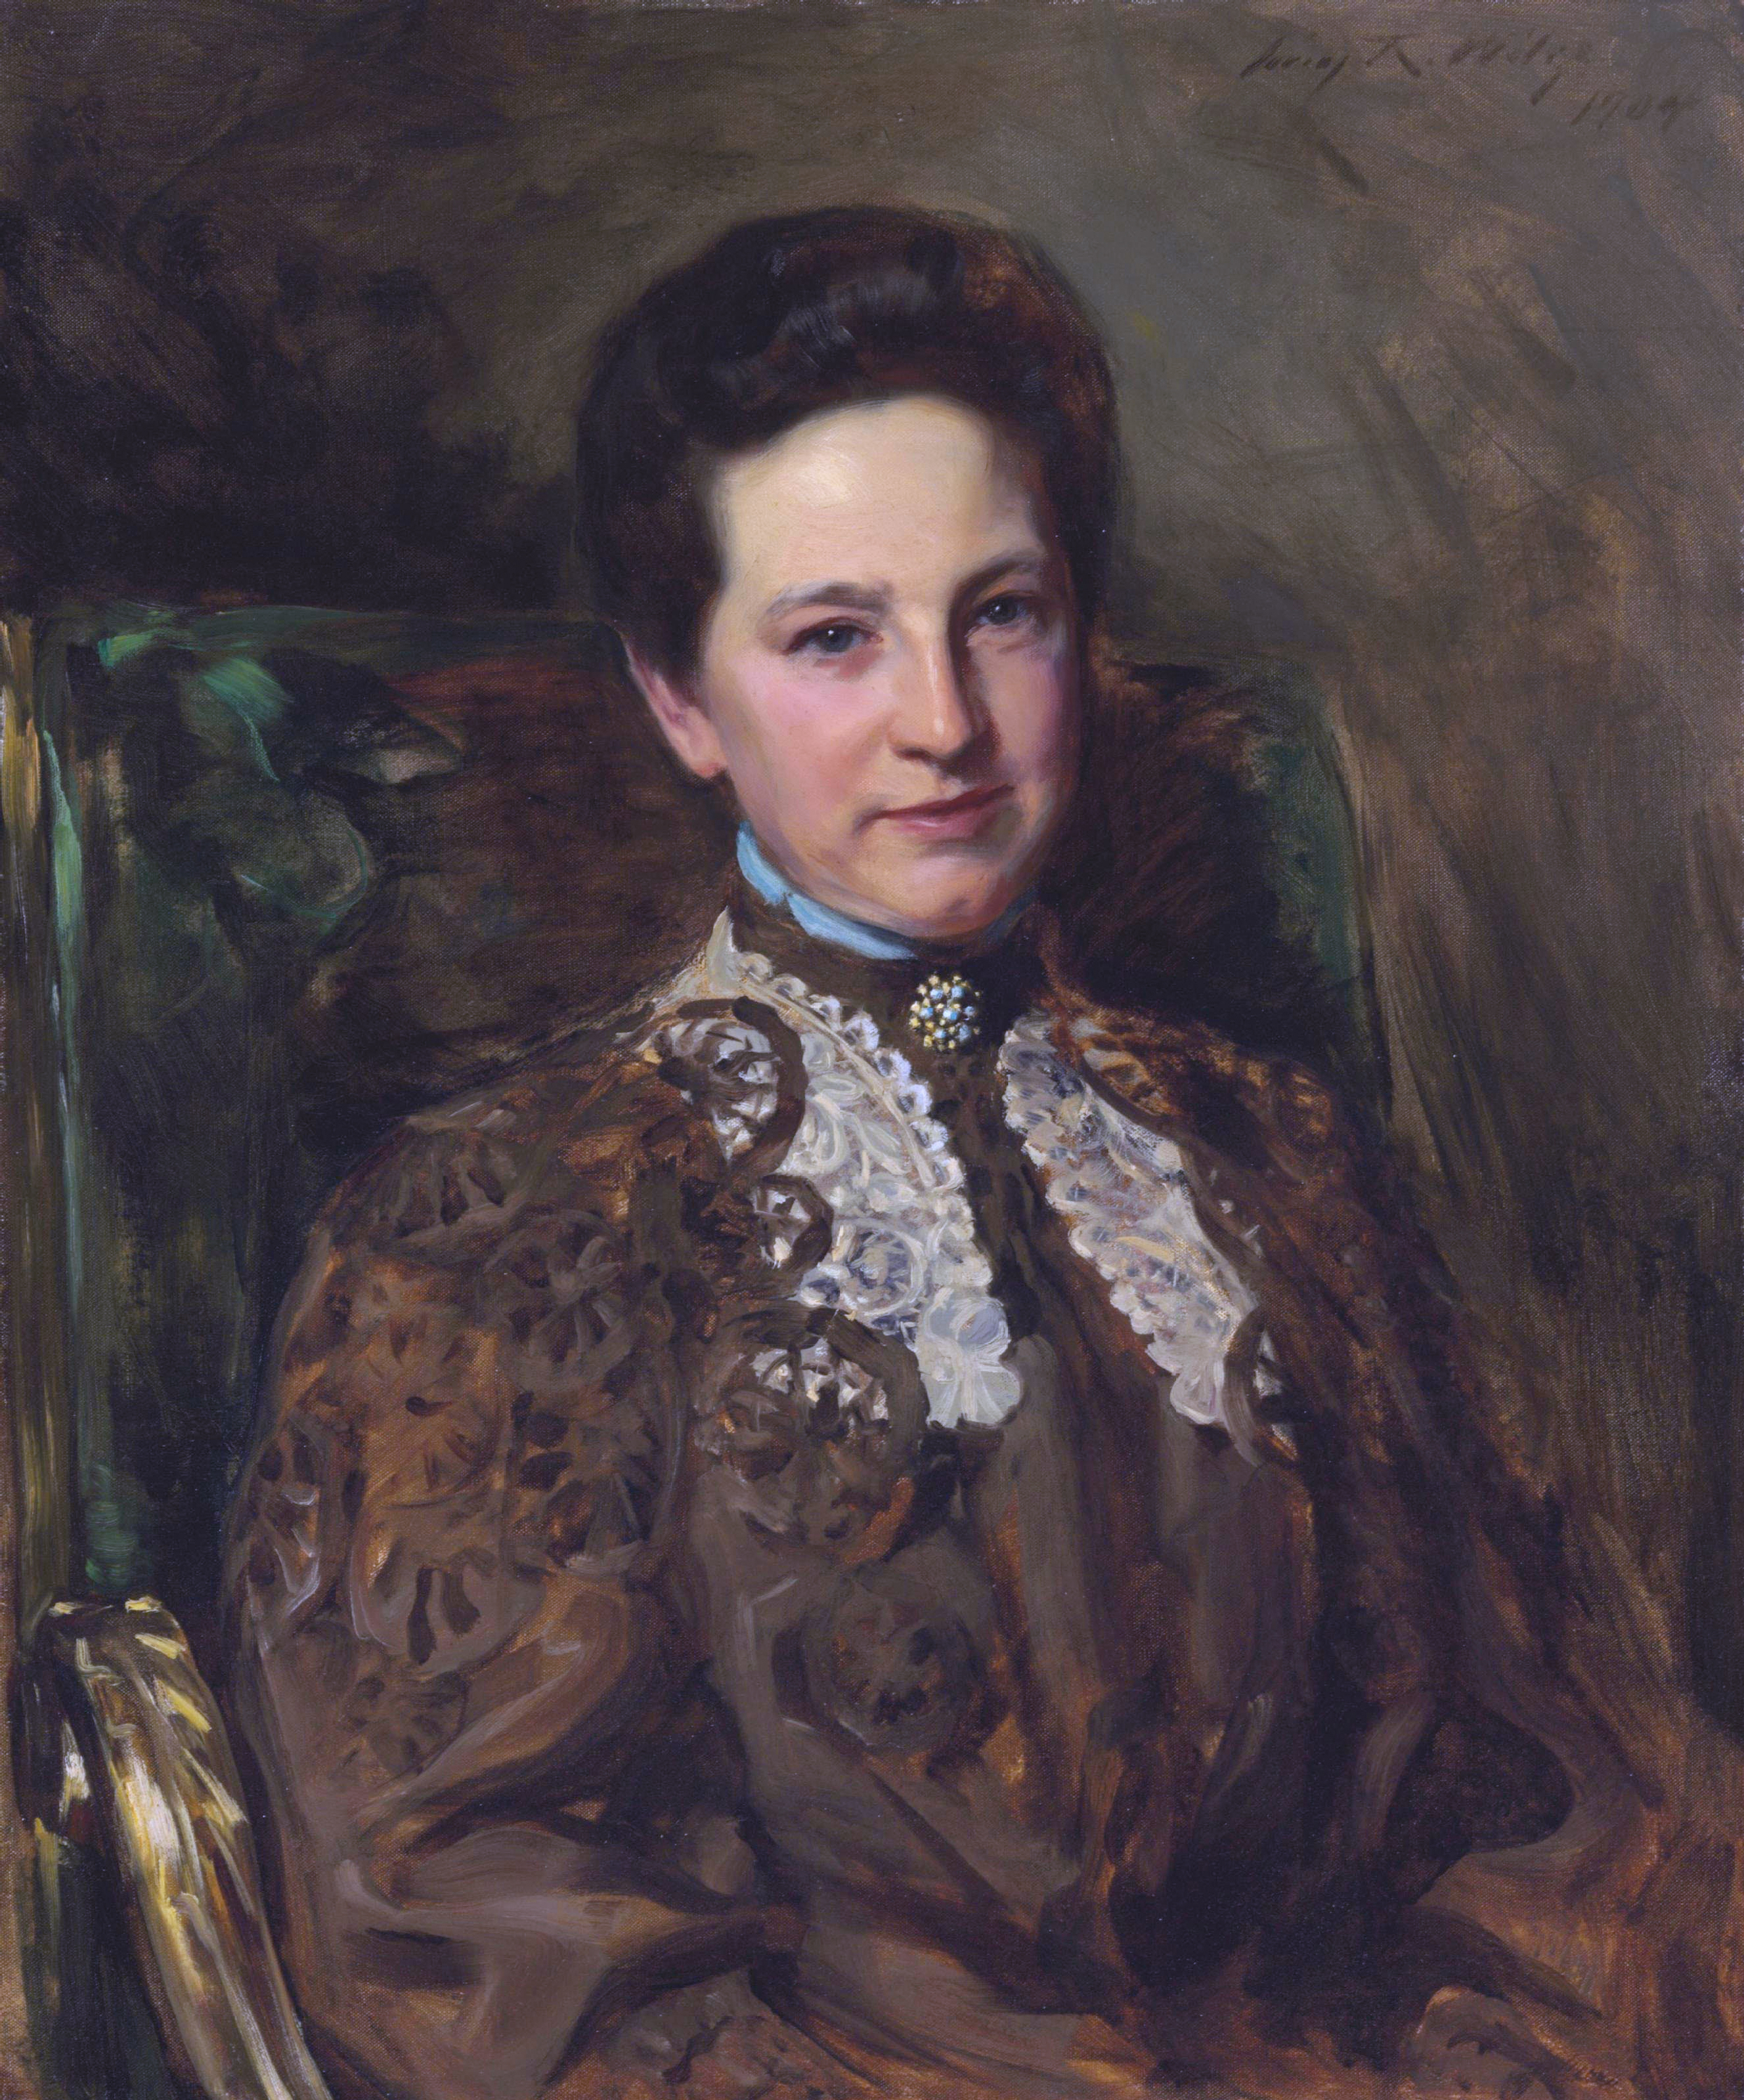 https://upload.wikimedia.org/wikipedia/commons/1/14/Caroline_Church_Murray_by_Irving_Ramsey_Wiles_%281861-1948%29.jpg